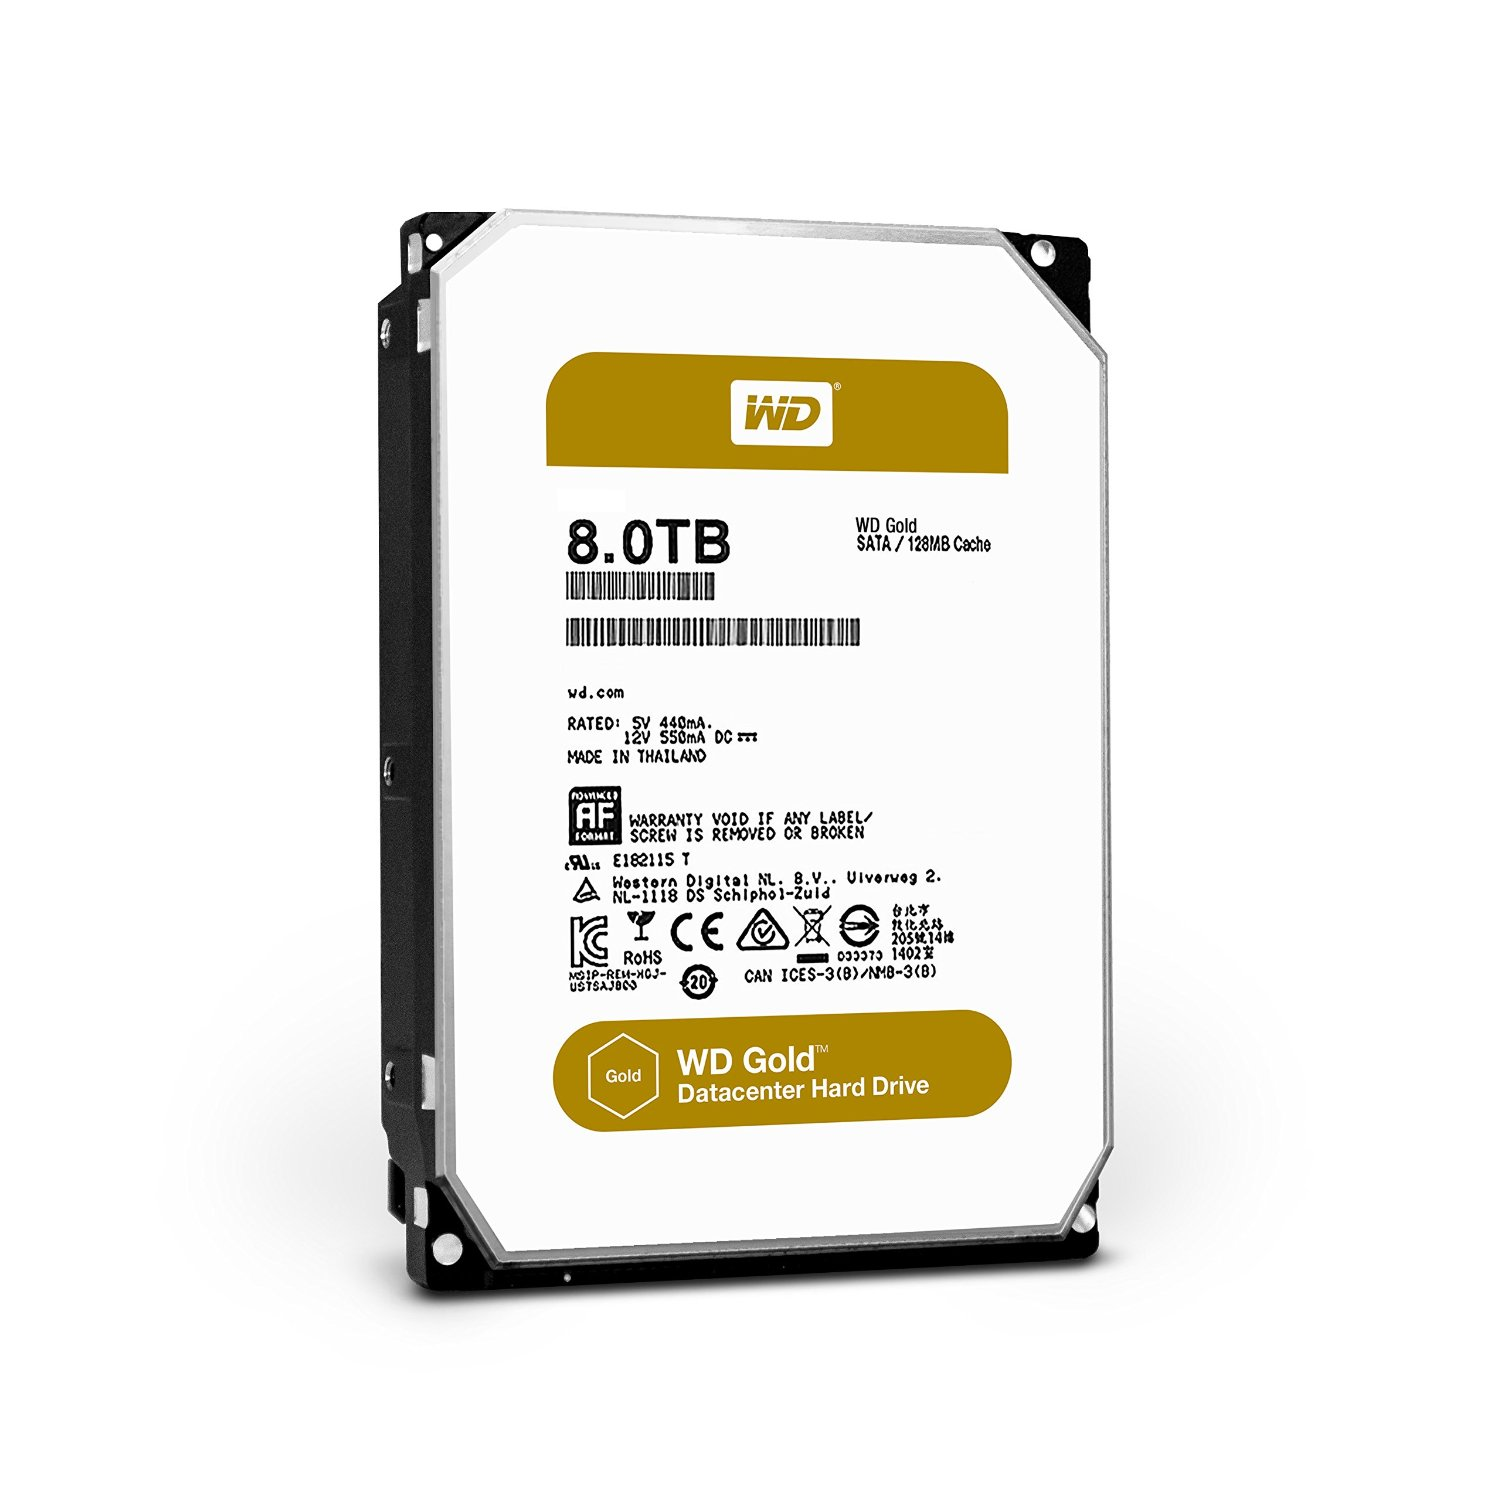 WD GOLD/HDD/8TB/3.5''/SATA3/7200RPM/128MB CACHE